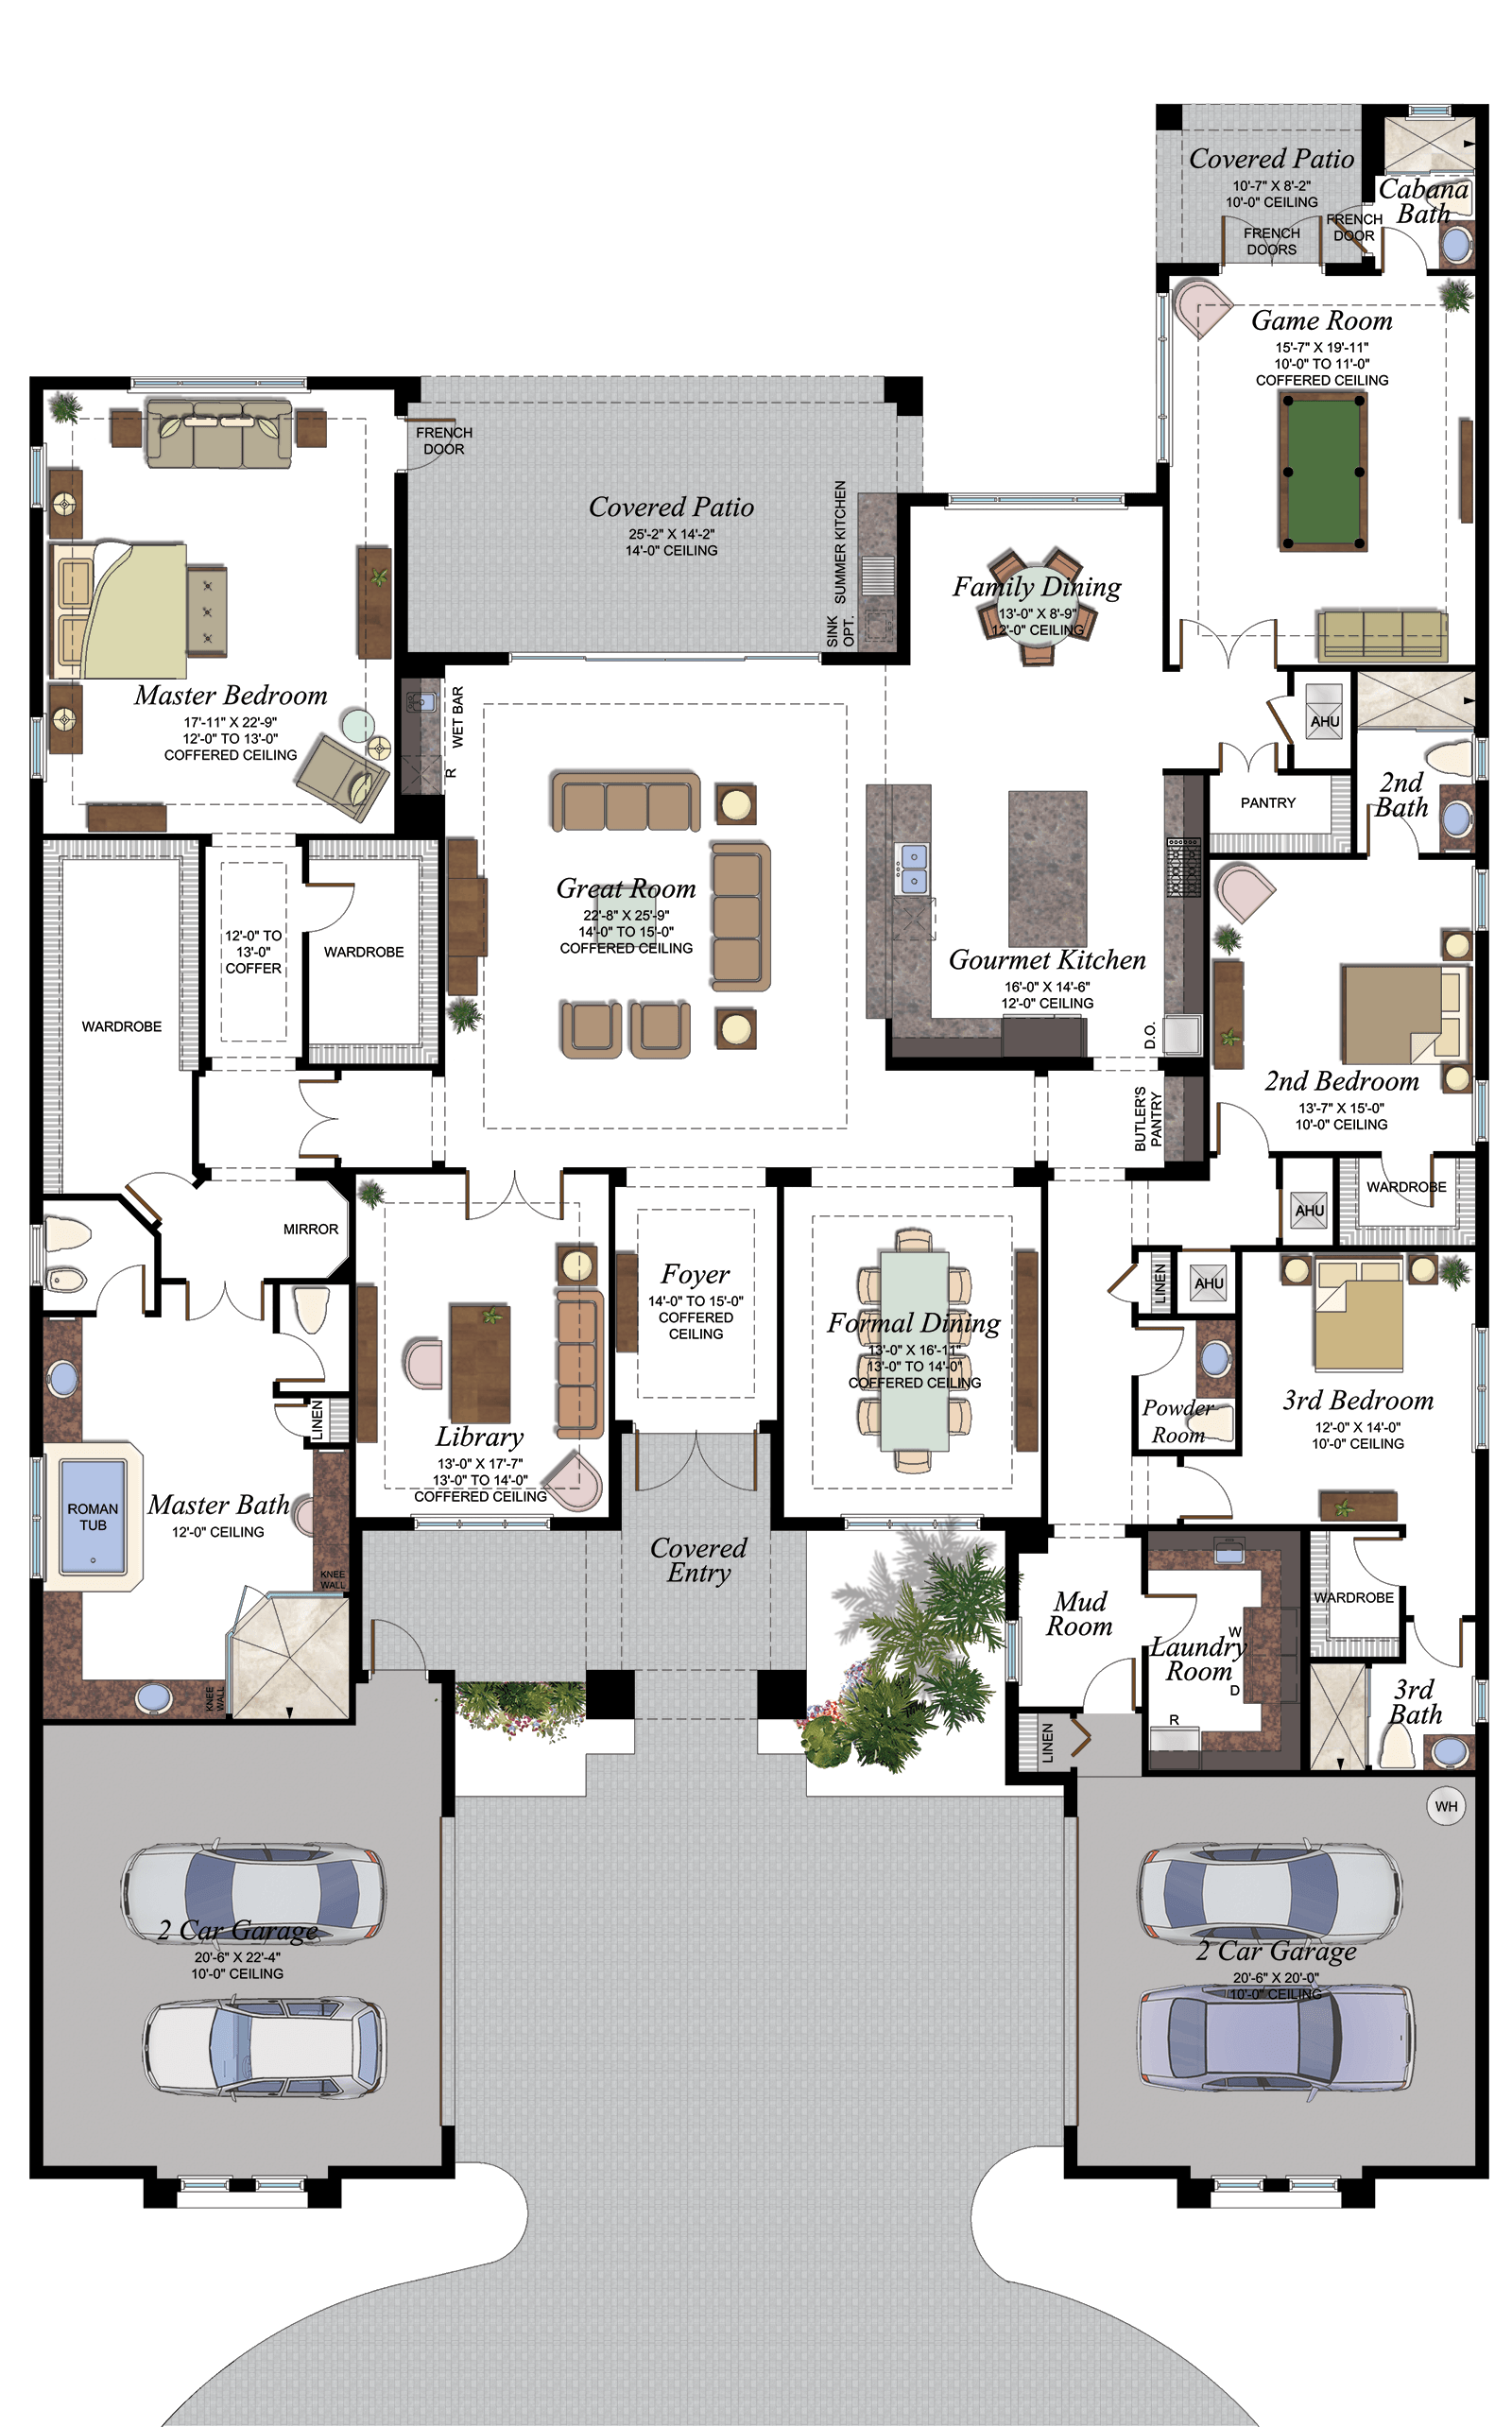 GL Homes | birthday in 2019 | Dream house plans, Floor plan ... on dormer designs, ranch painting, ranch land, stone building designs, townhouse designs, mansion designs, ranch bathroom, bungalow designs, farmhouse designs, ranch interior design, antique shop designs, ranch art, ranch houses with stone fronts, ranch photography,